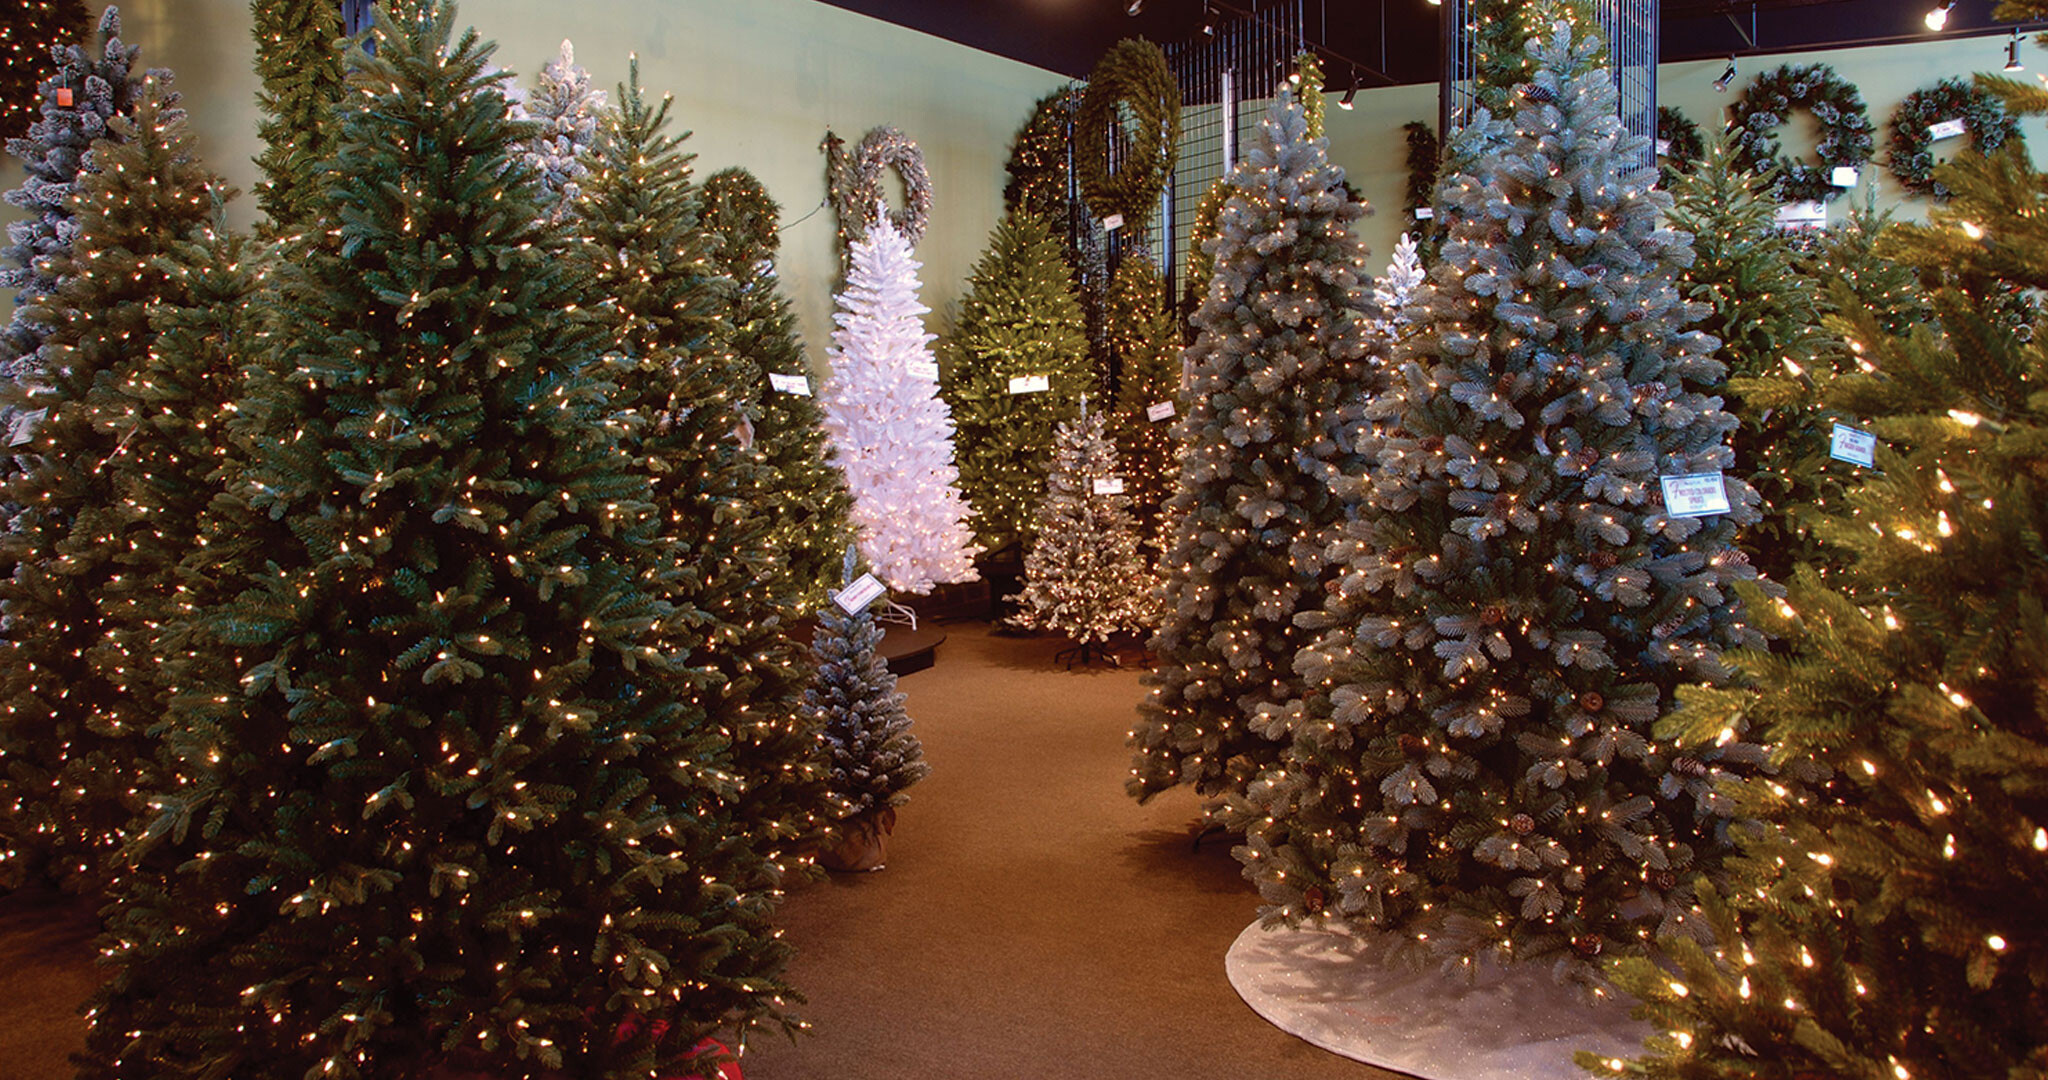 Holiday bummer: Now prices are soaring for Christmas trees and decorations